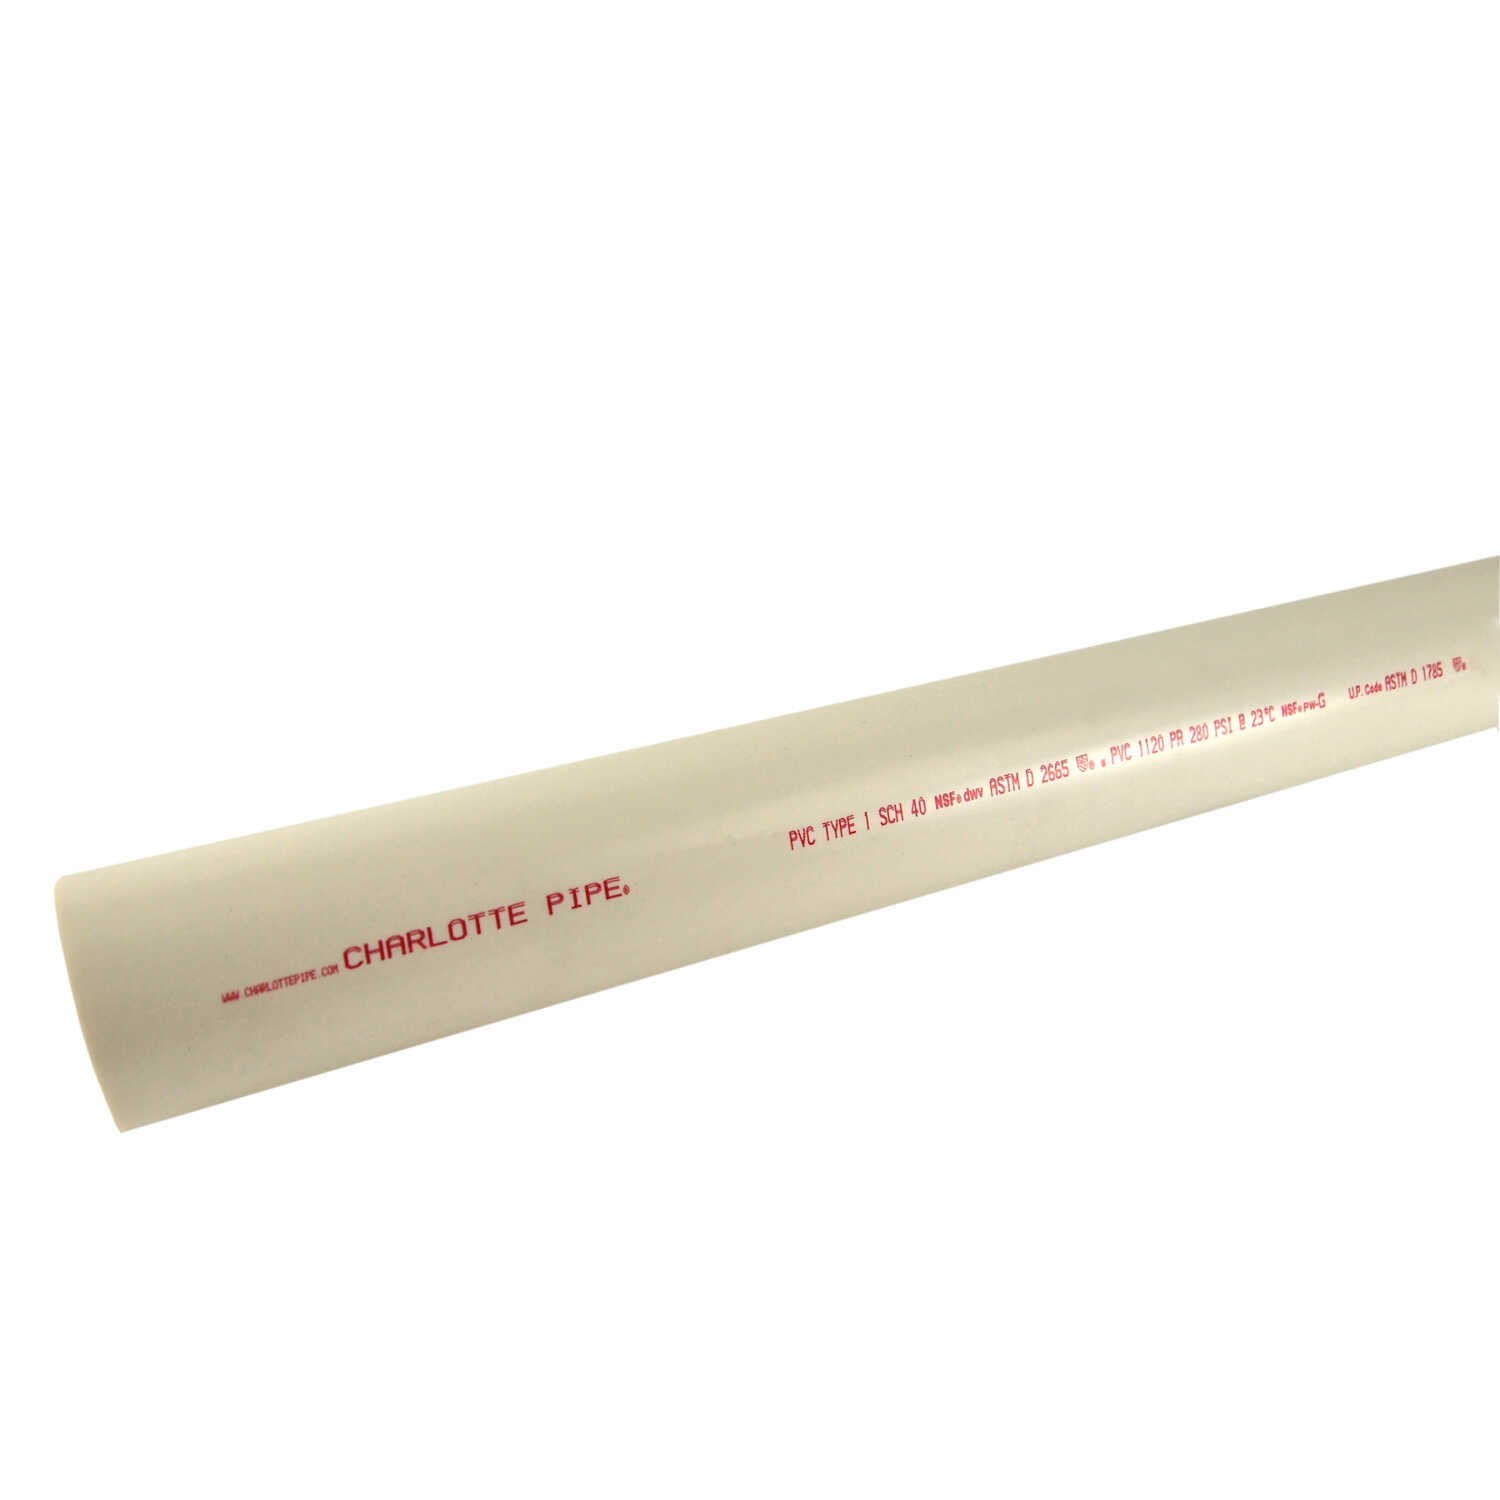 Cresline  PVC Pipe  4 in. Dia. x 20 ft. L Plain End  Schedule 40  220 psi